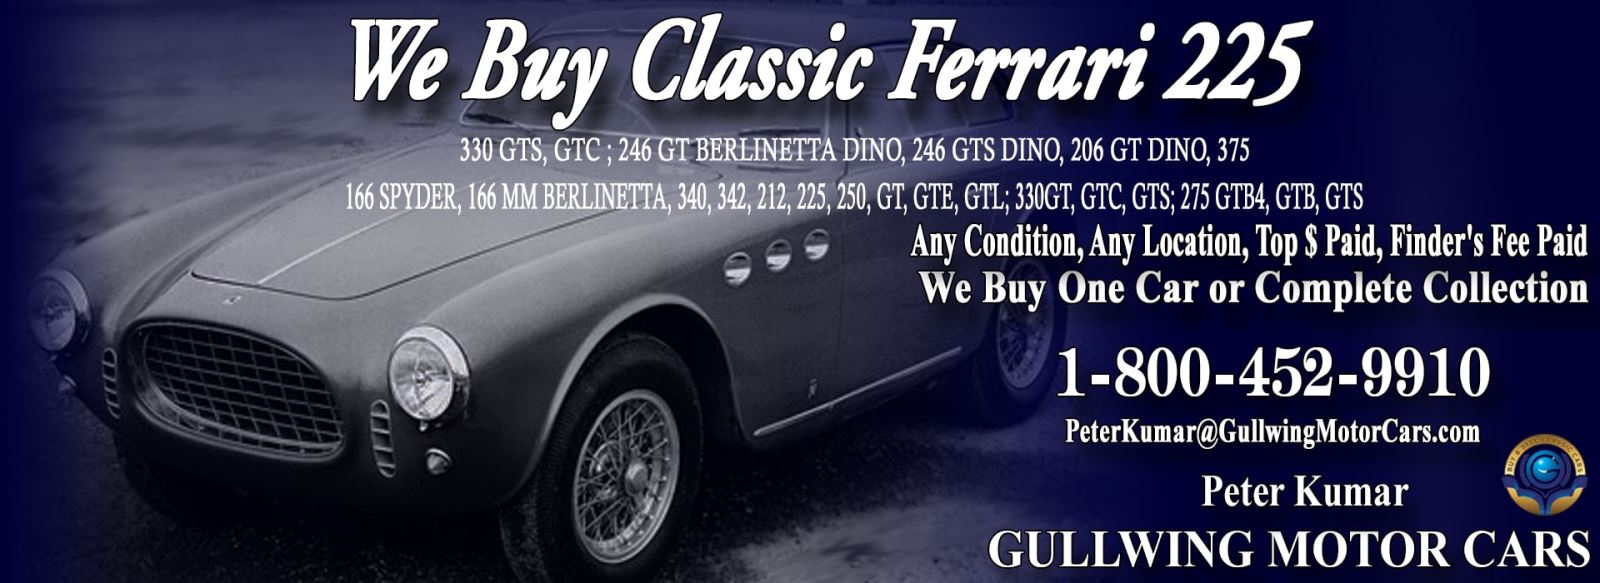 Classic Ferrari 225 for sale, we buy vintage Ferrari 225 Dino. Call Peter Kumar. Gullwing Motor